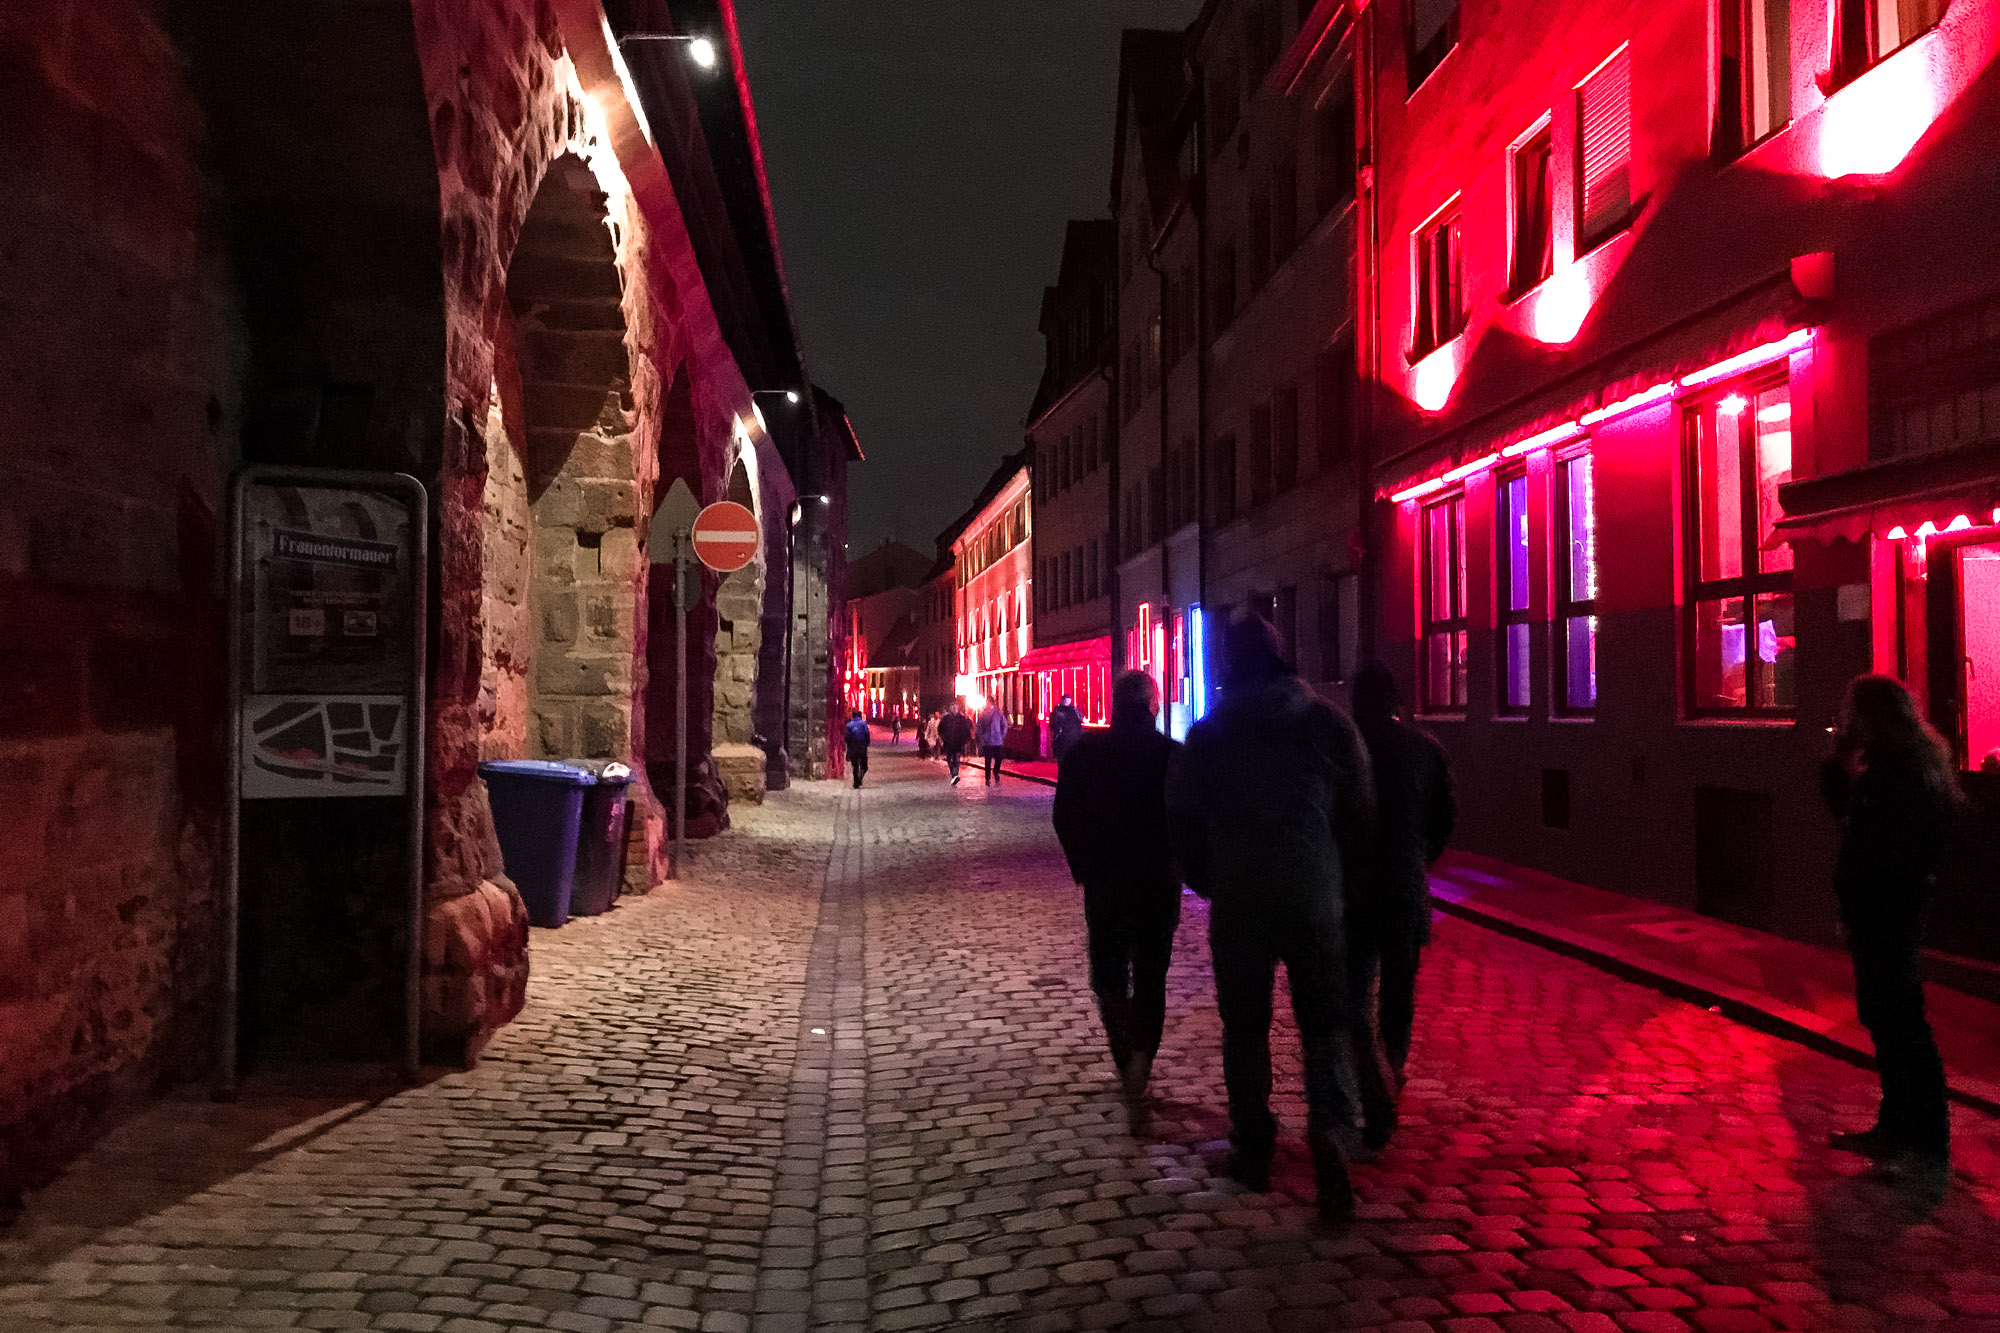 Nürnberg redlight district